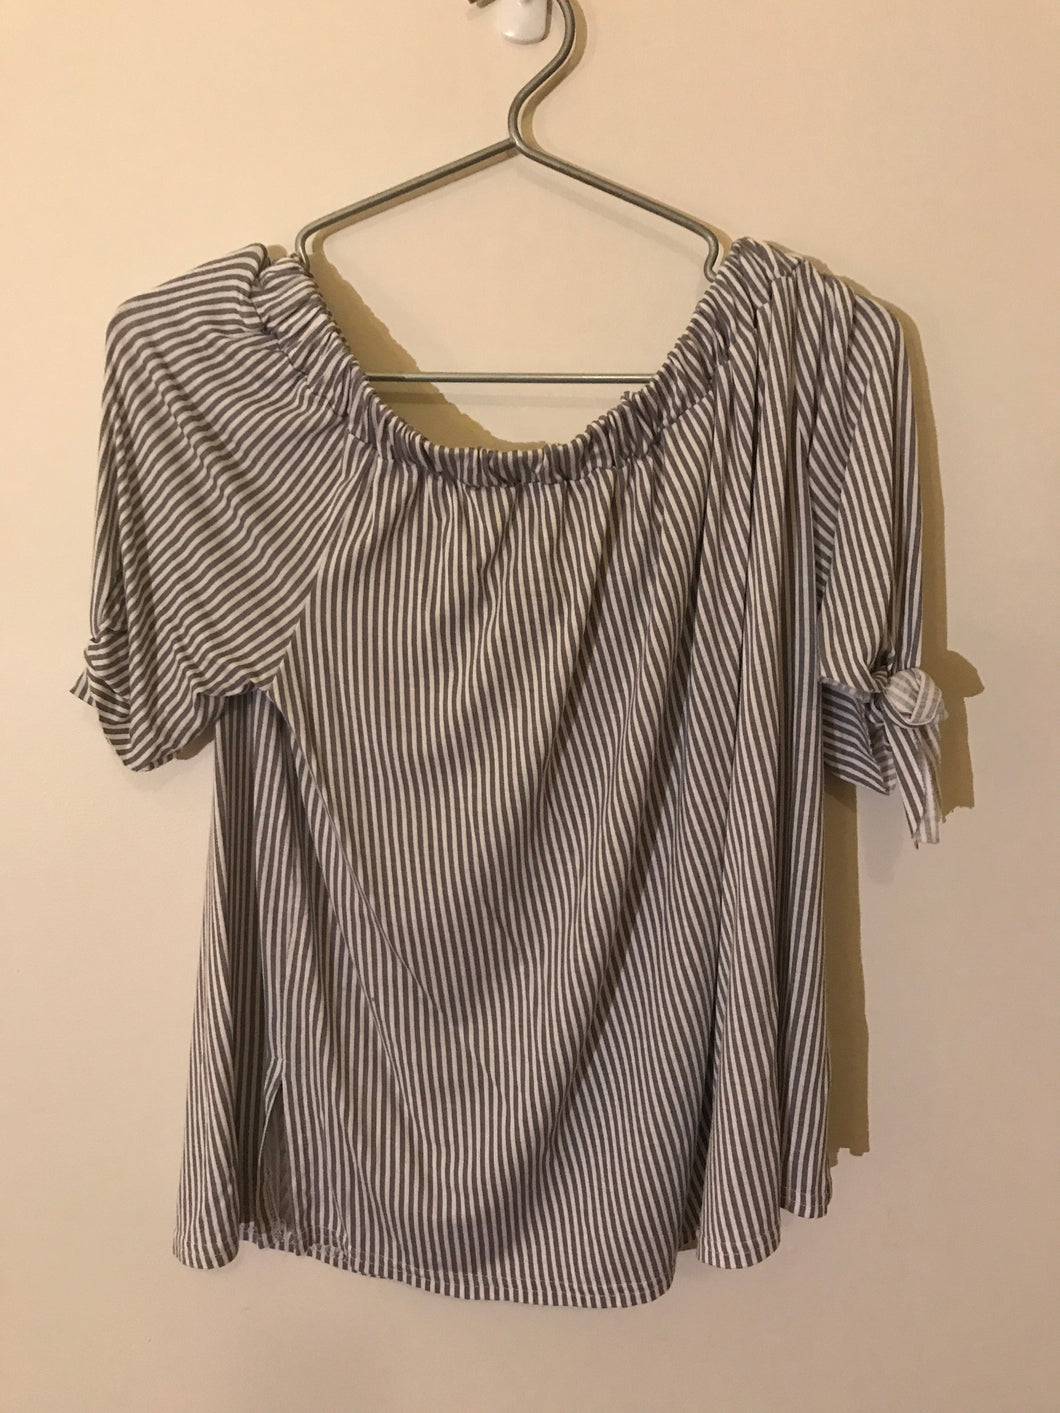 Boohoo white/grey striped off the shoulder top Size Medium (10-12 estimate)